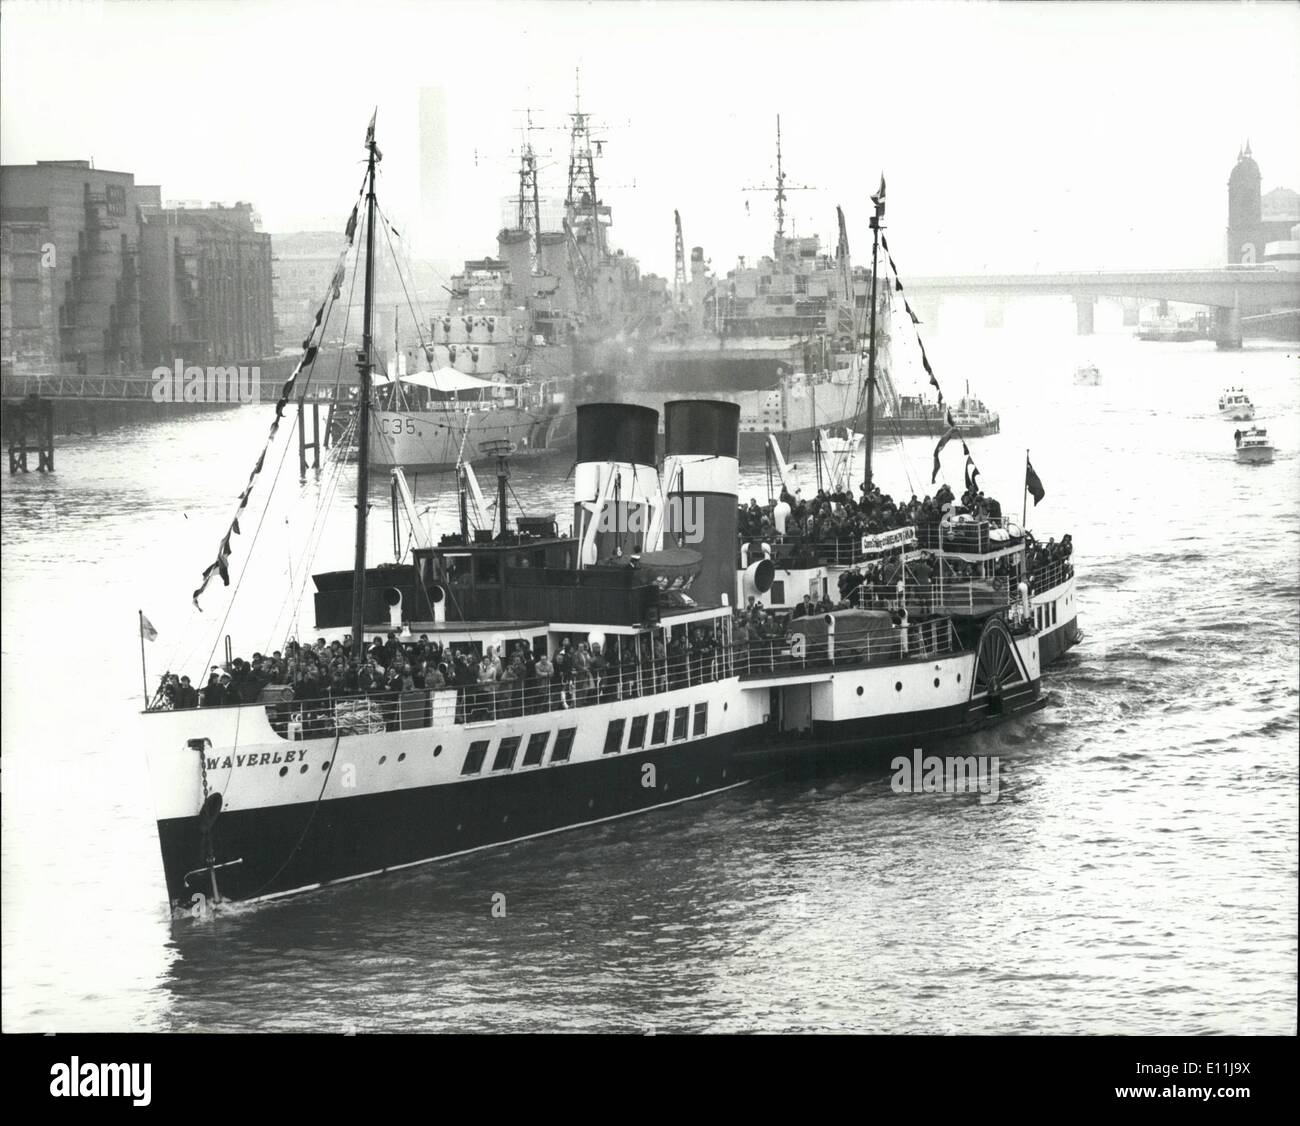 Apr. 04, 1978 - BLB to save the Waverly from the scrap yard.: In a bid to save the 31-year-old paddle steamer Waverly from the scrap yard, it is on a visit to London after a journey from Scotland, for a week's voyages from the Tower, which if successful will ensure the steamer's futue. This morning the Waverly left Tower Pier for Southend and Clacton. Photo shows the Waverly seen leaving Tower Pier this morning. - Stock Image